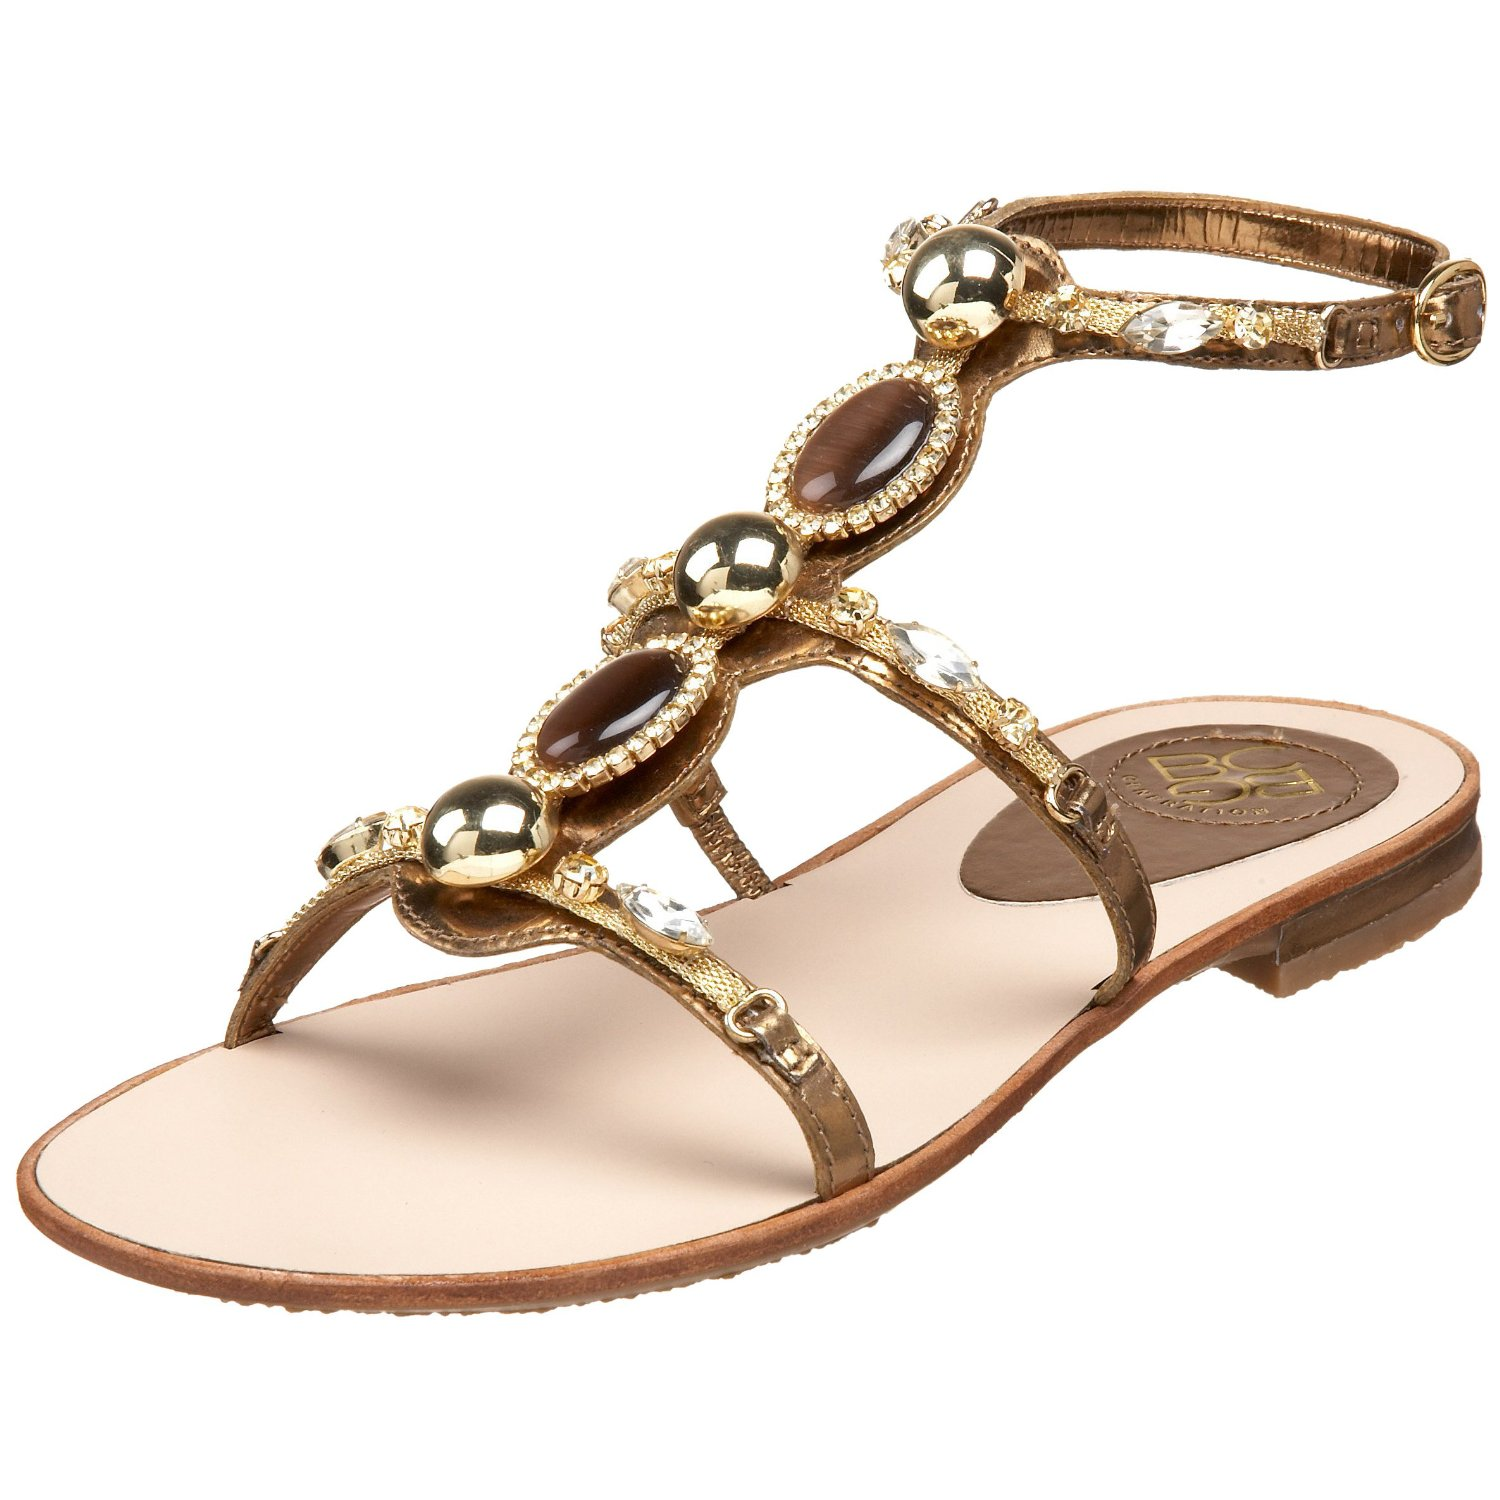 The Most Beautiful Flat Sandals